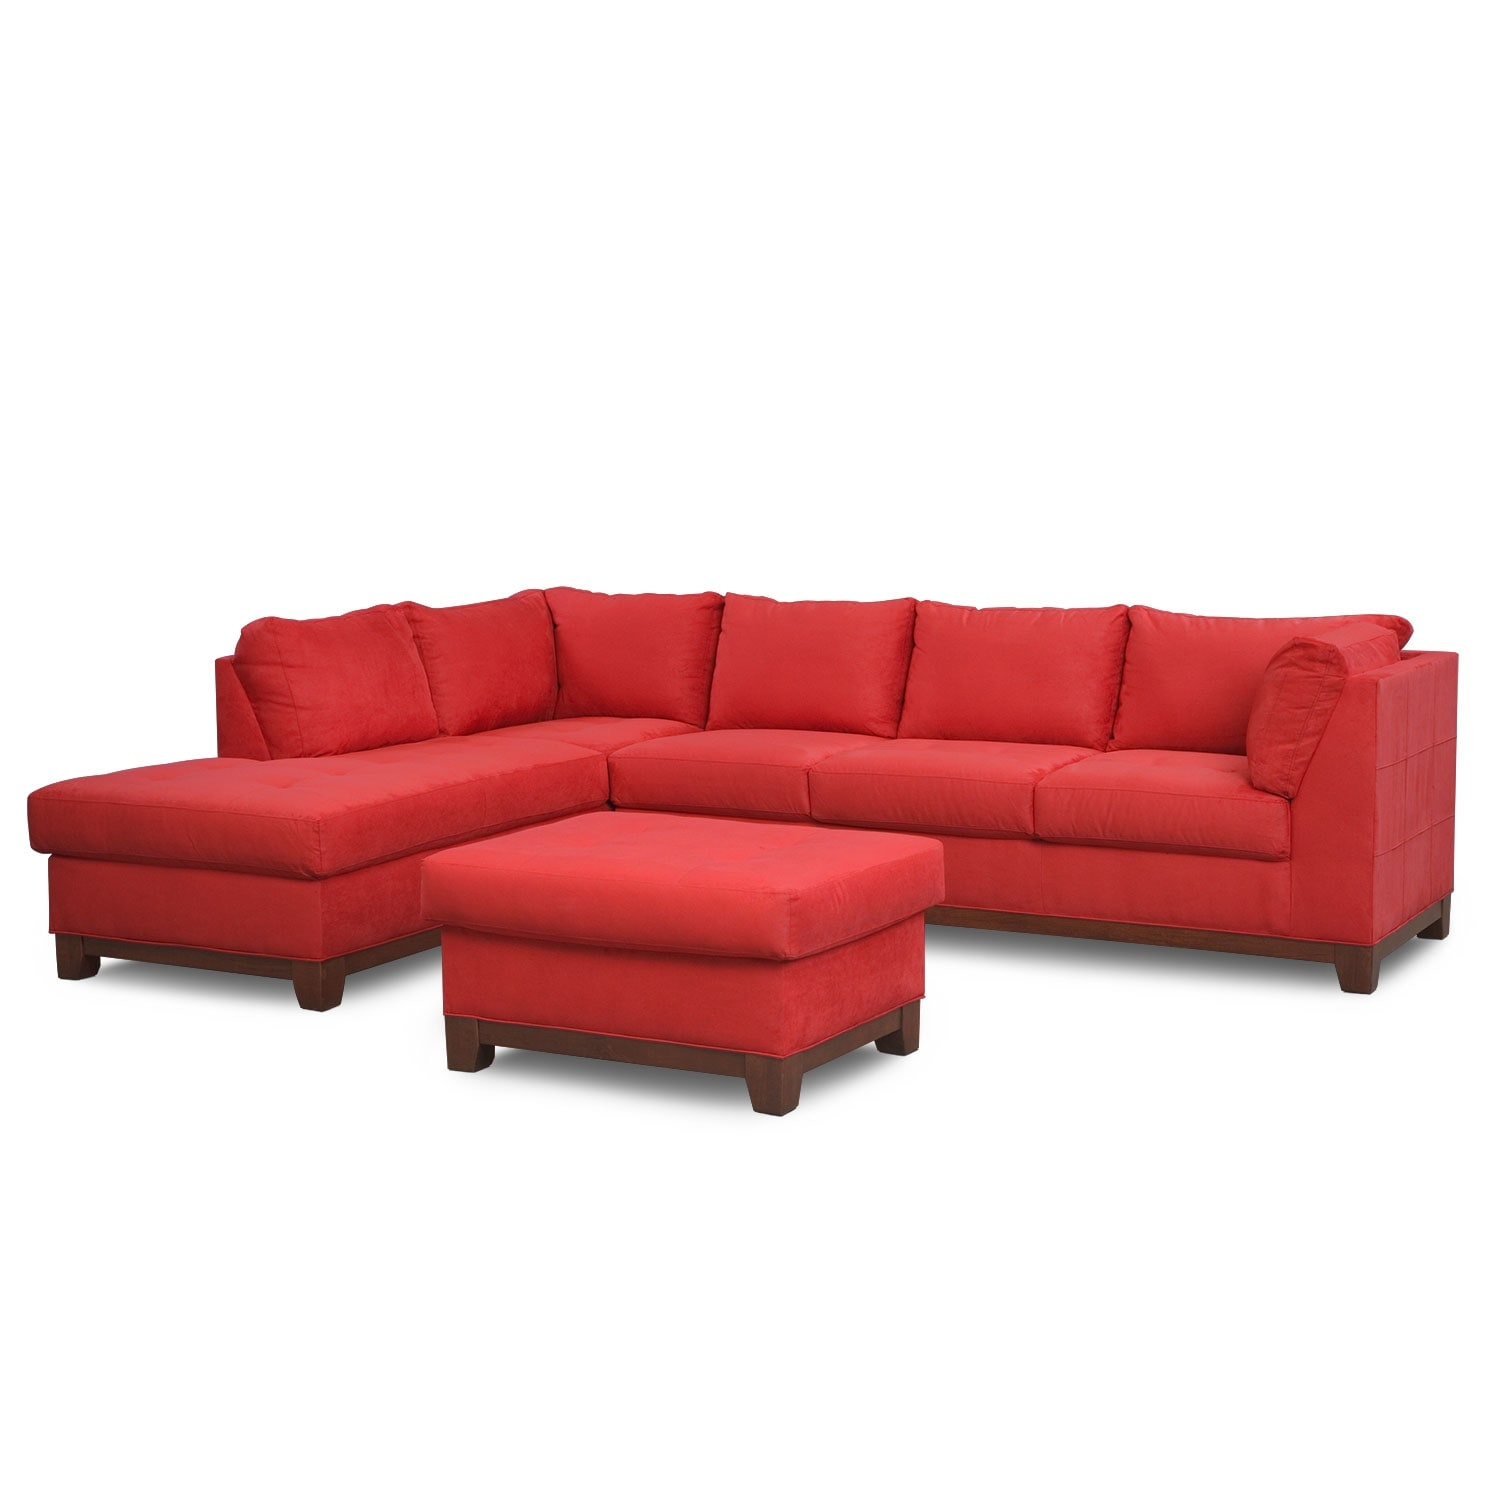 Living Room Furniture - Soho 2-Piece Sectional with Left-Facing Chaise and Ottoman - Red